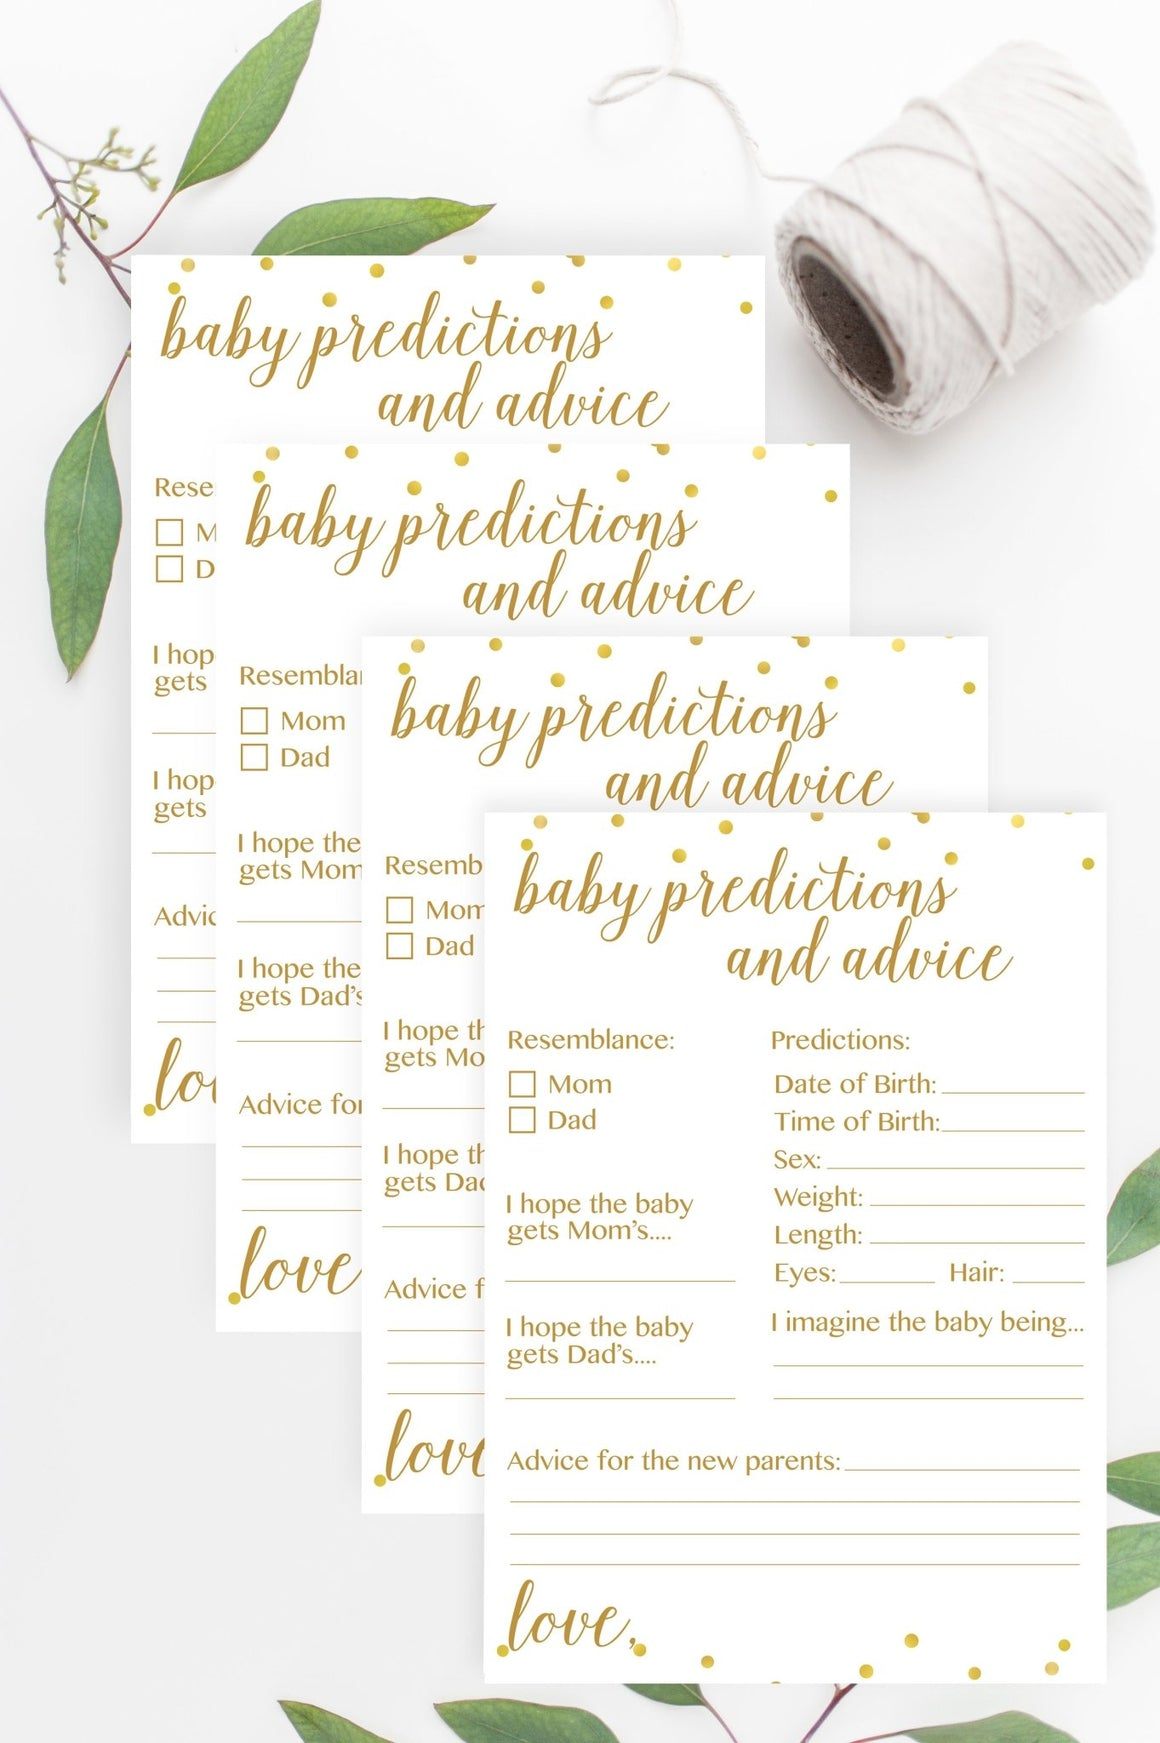 Baby Predictions and Advice (with Sex) - Gold Confetti Printable - Pretty Collected